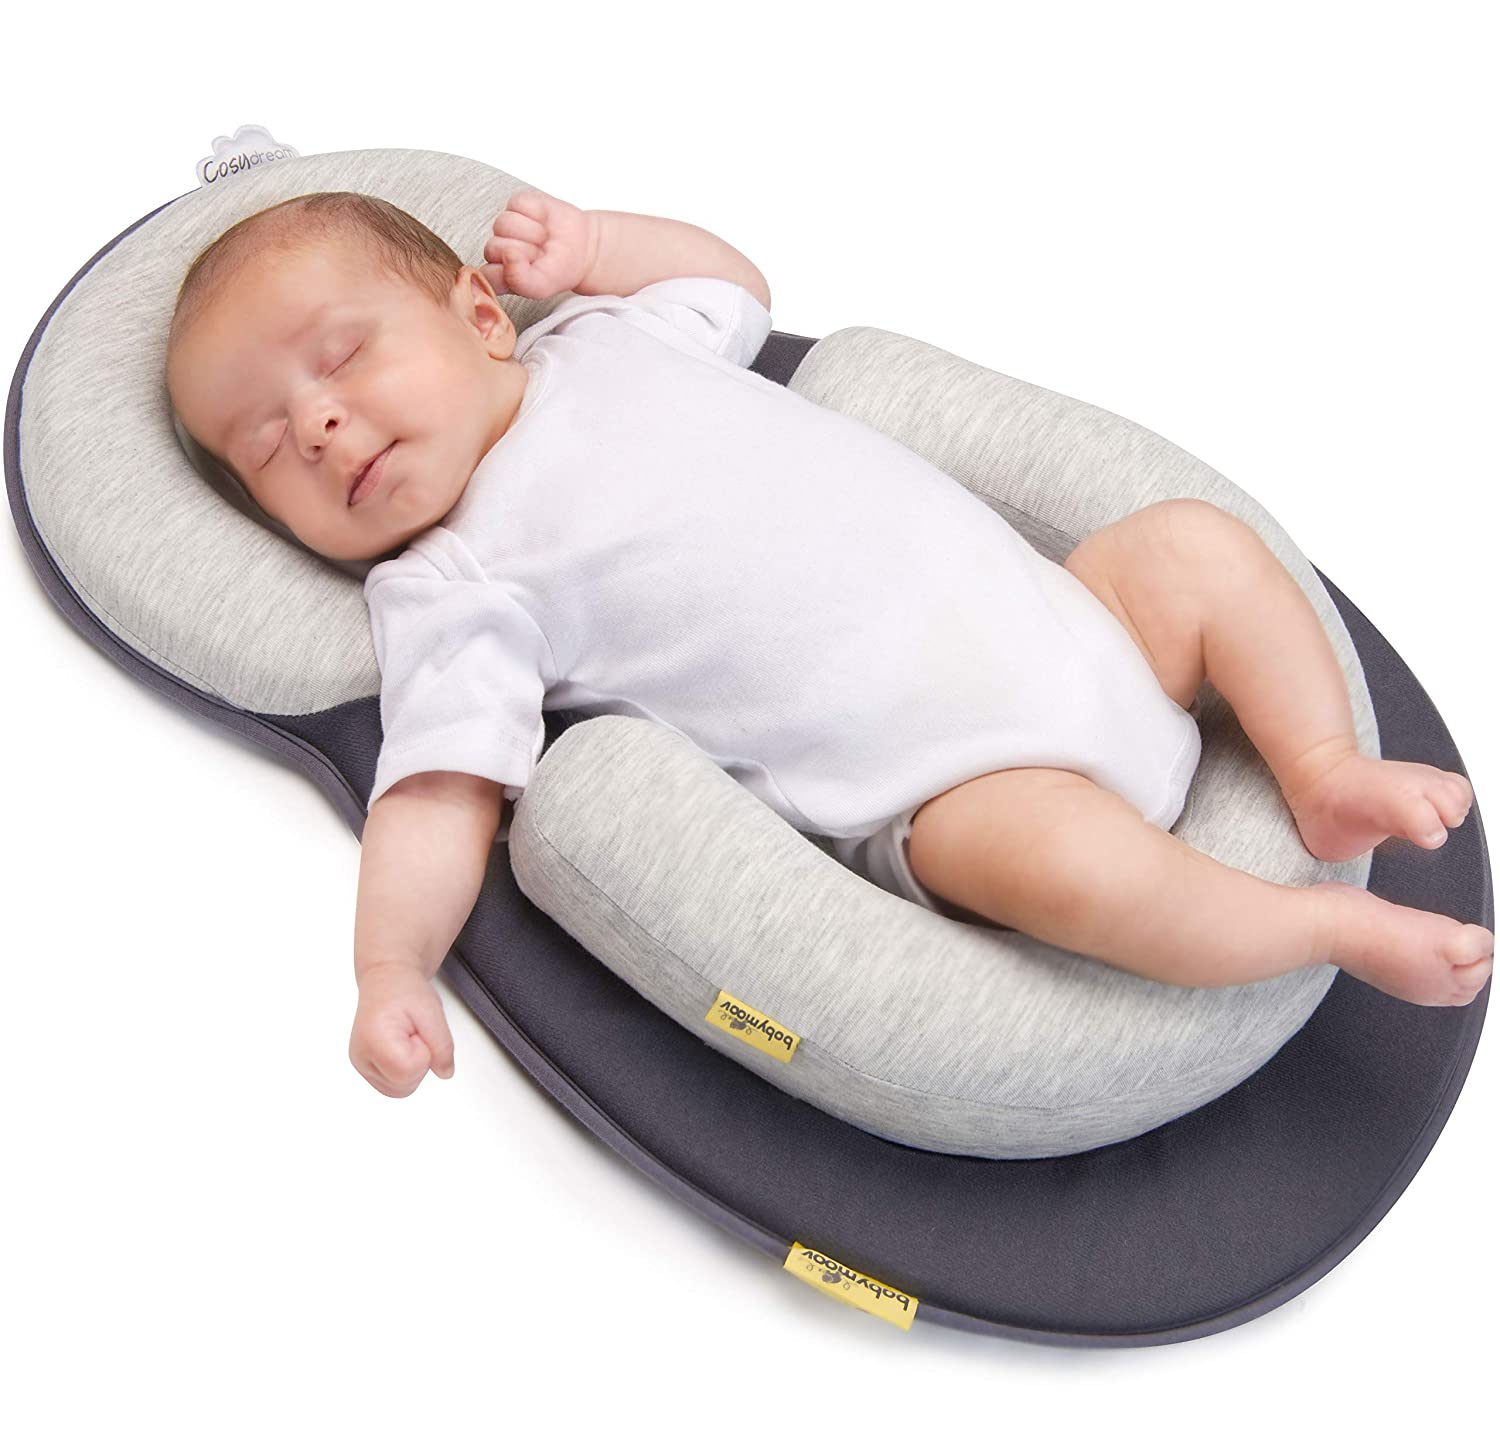 Top 10 Best Baby Co-Sleepers (2020 Reviews & Buying Guide) 10